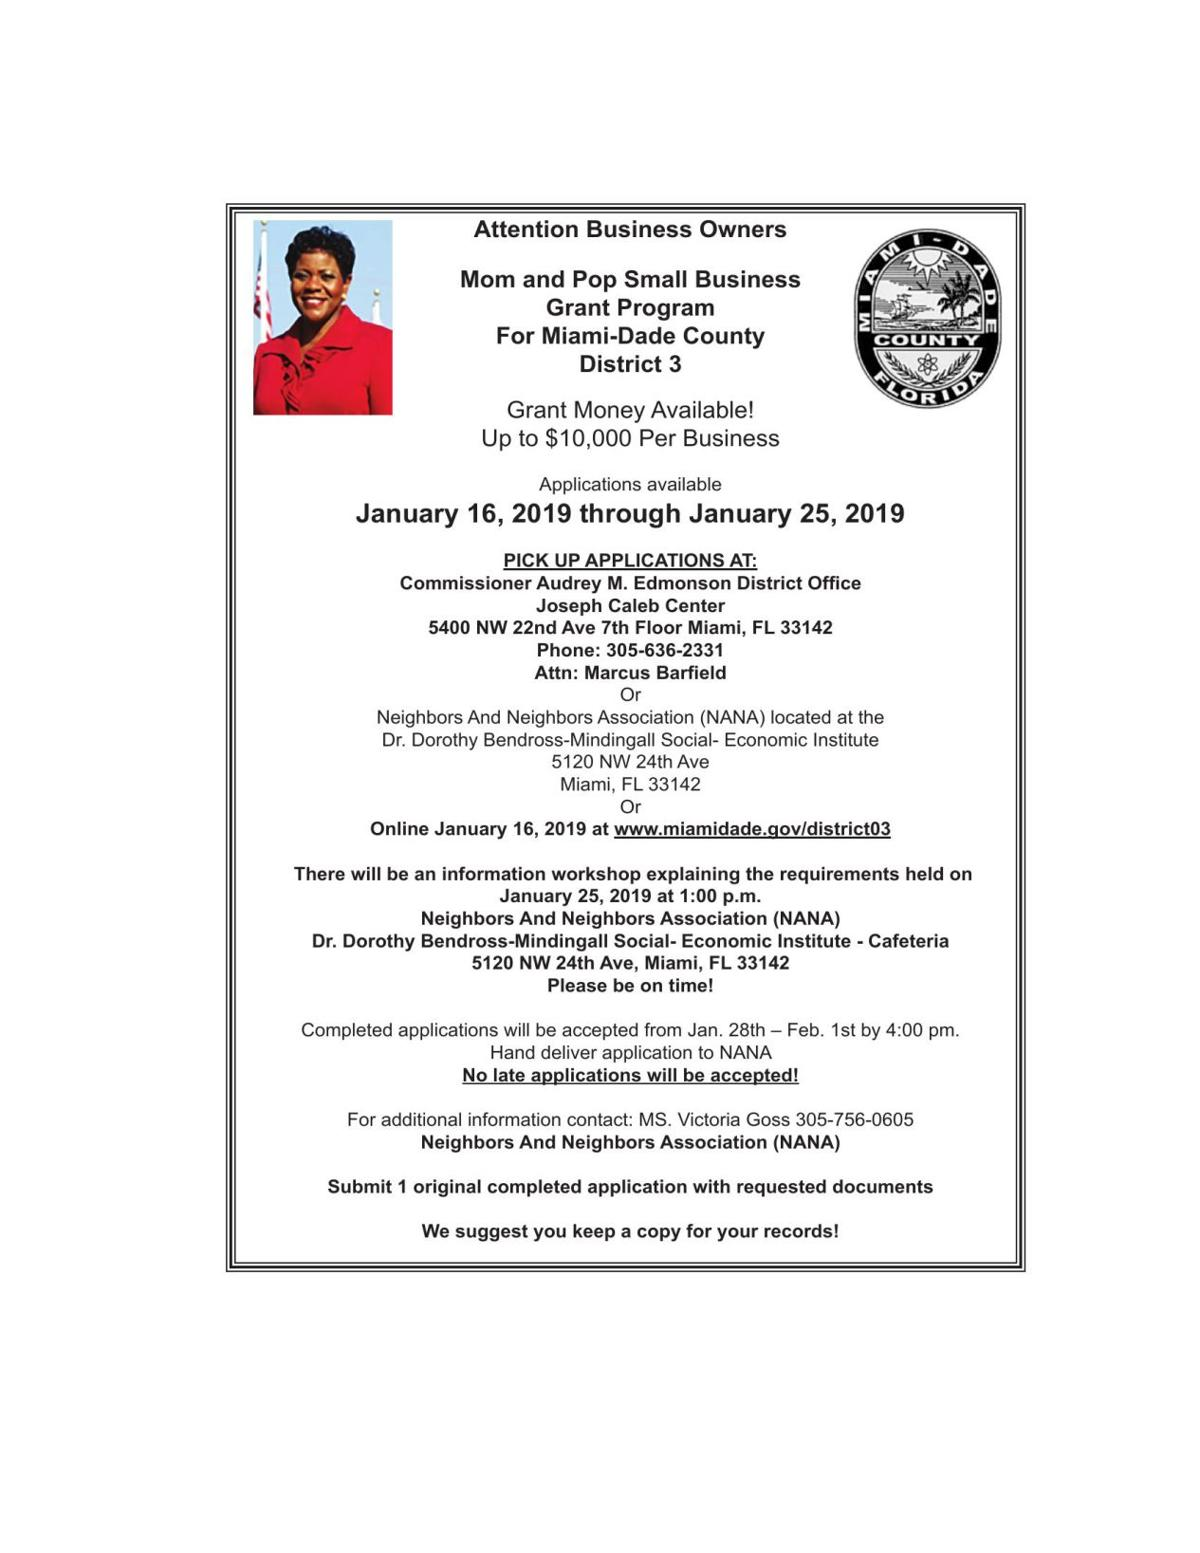 Mom and Pop Small Business Grant Program For Miami-Dade County District 3